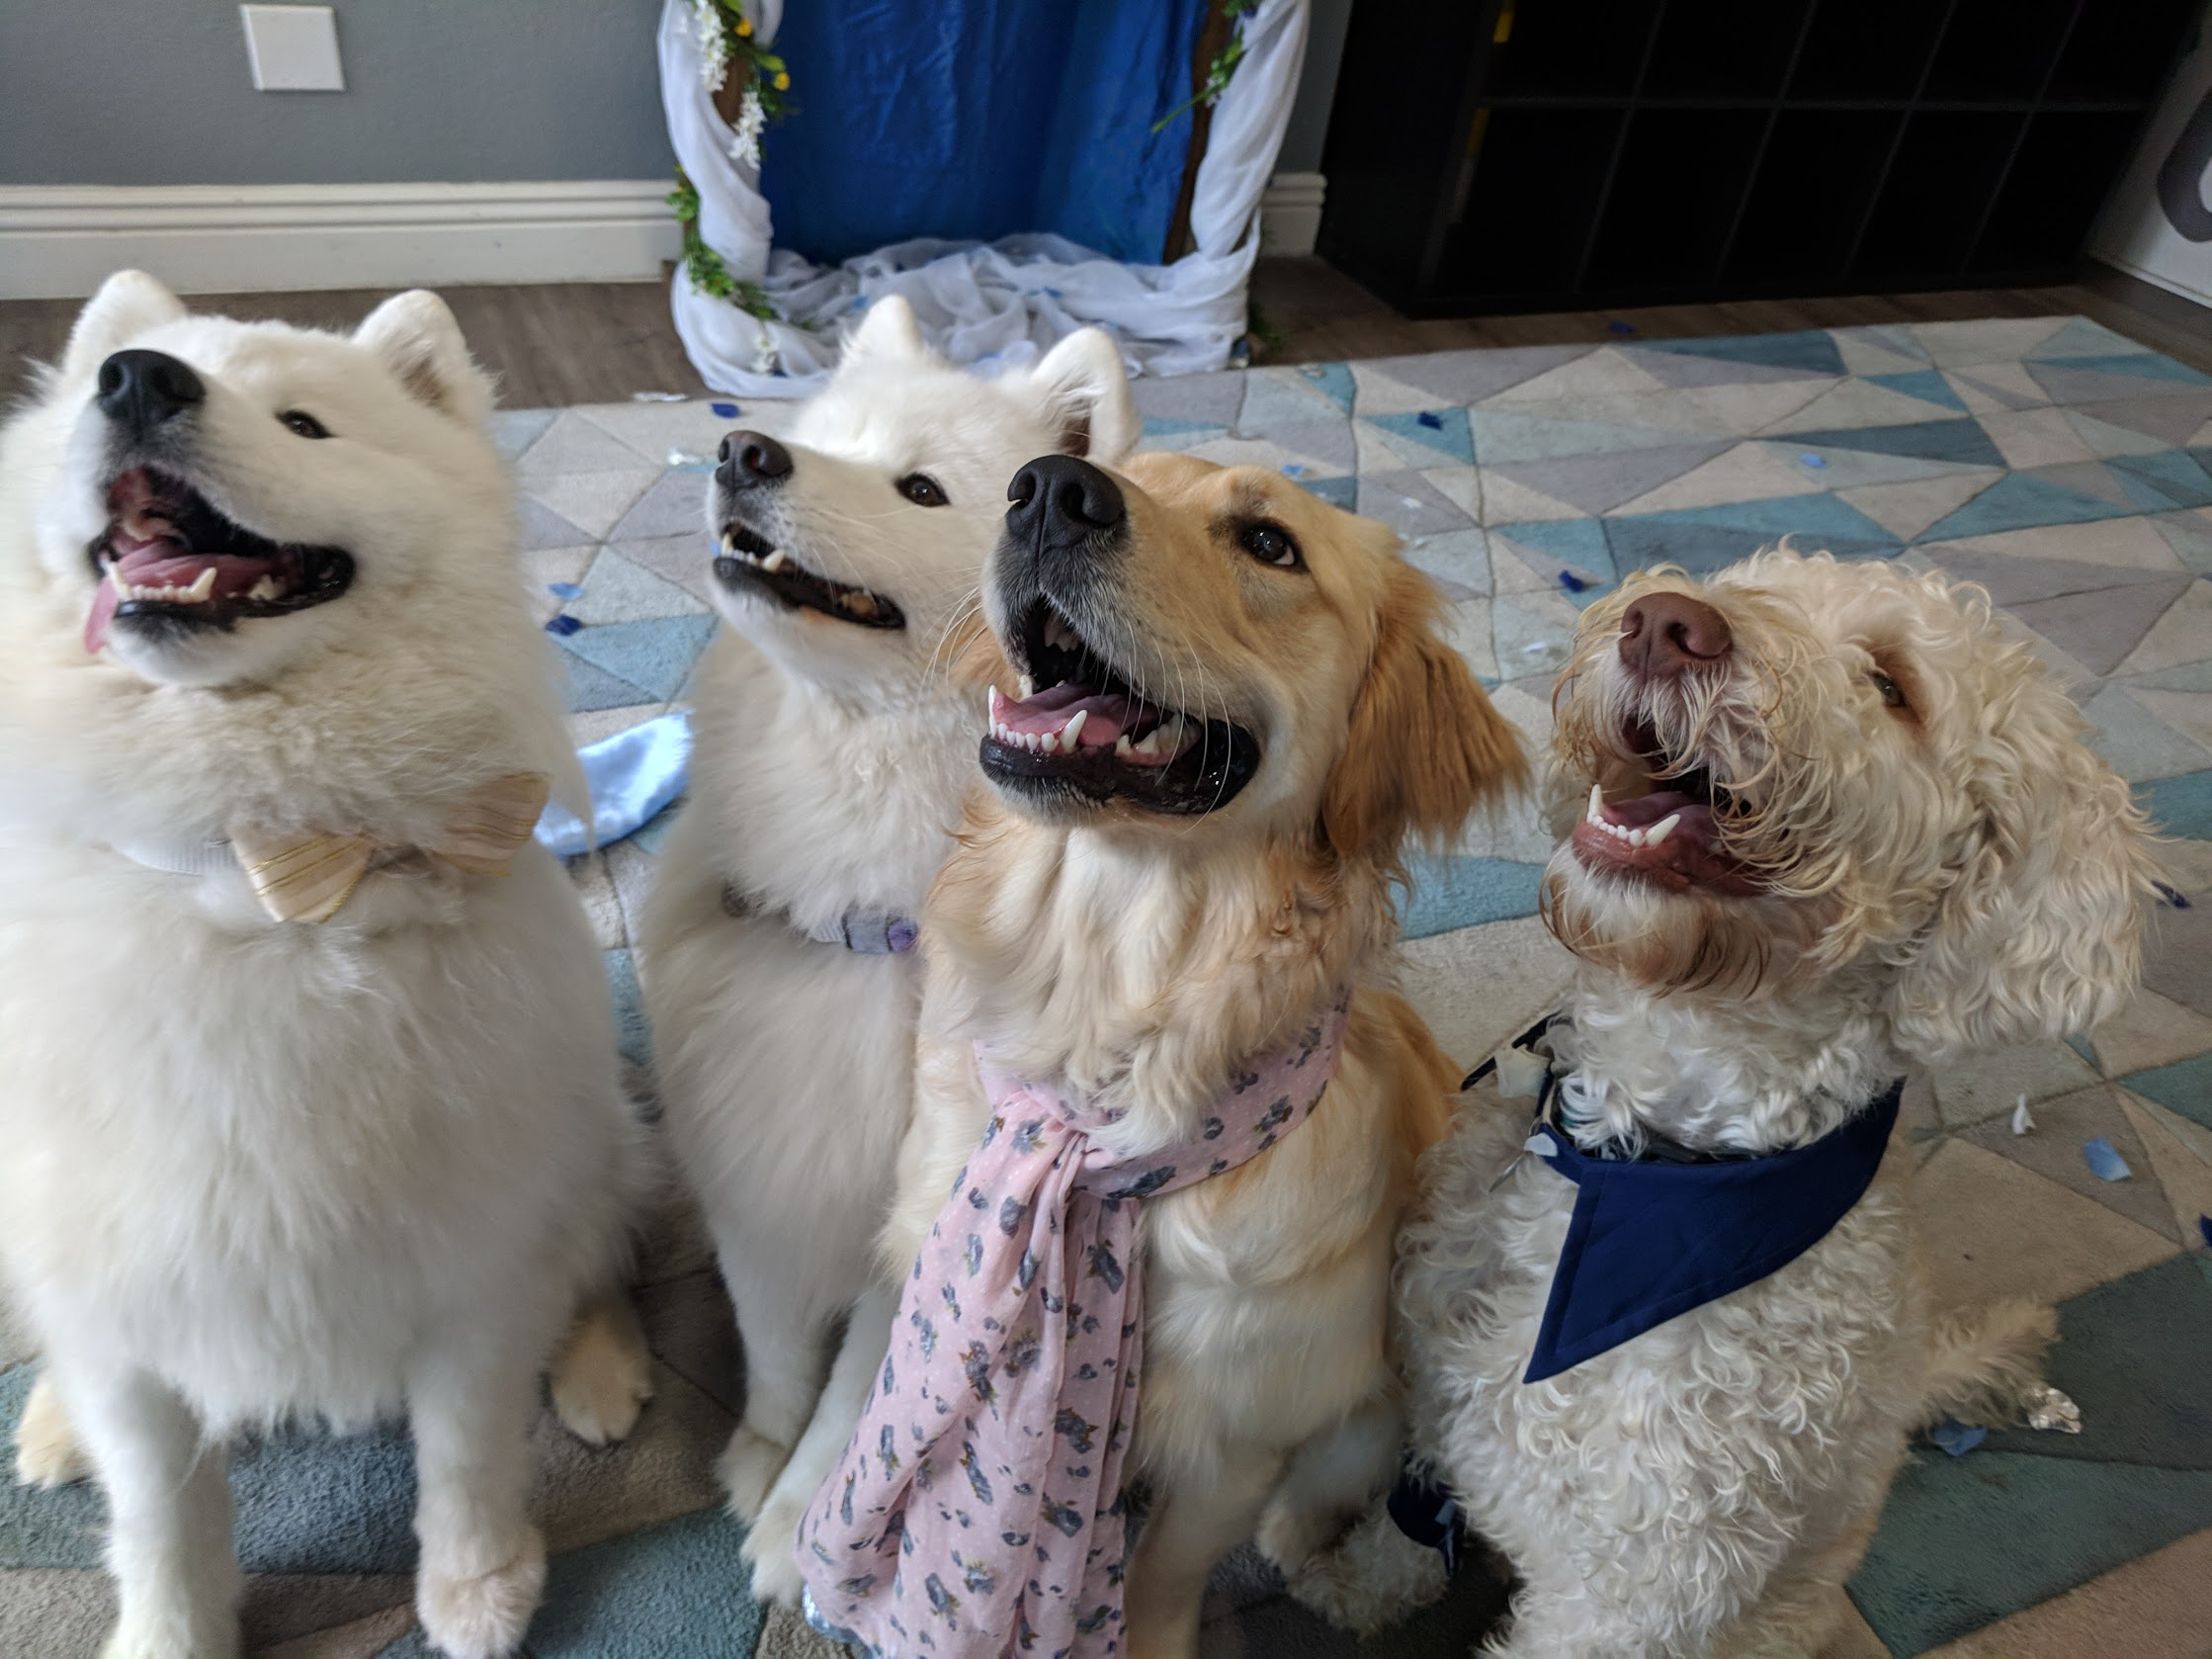 Matchmaking - Our matchmaking service is the key to introducing your pup to lifelong furry friends. At PlayBow, we recognize that there are just as many dog personalities as there are people personalities. To help each dog feel as comfortable as possible with his or her playmates, we keep playgroups small, and closely monitor each dog's body language. Rather than lump together all large dogs, and all small dogs, we get to know each dog's personality, who their best friends are, and play matchmaker.